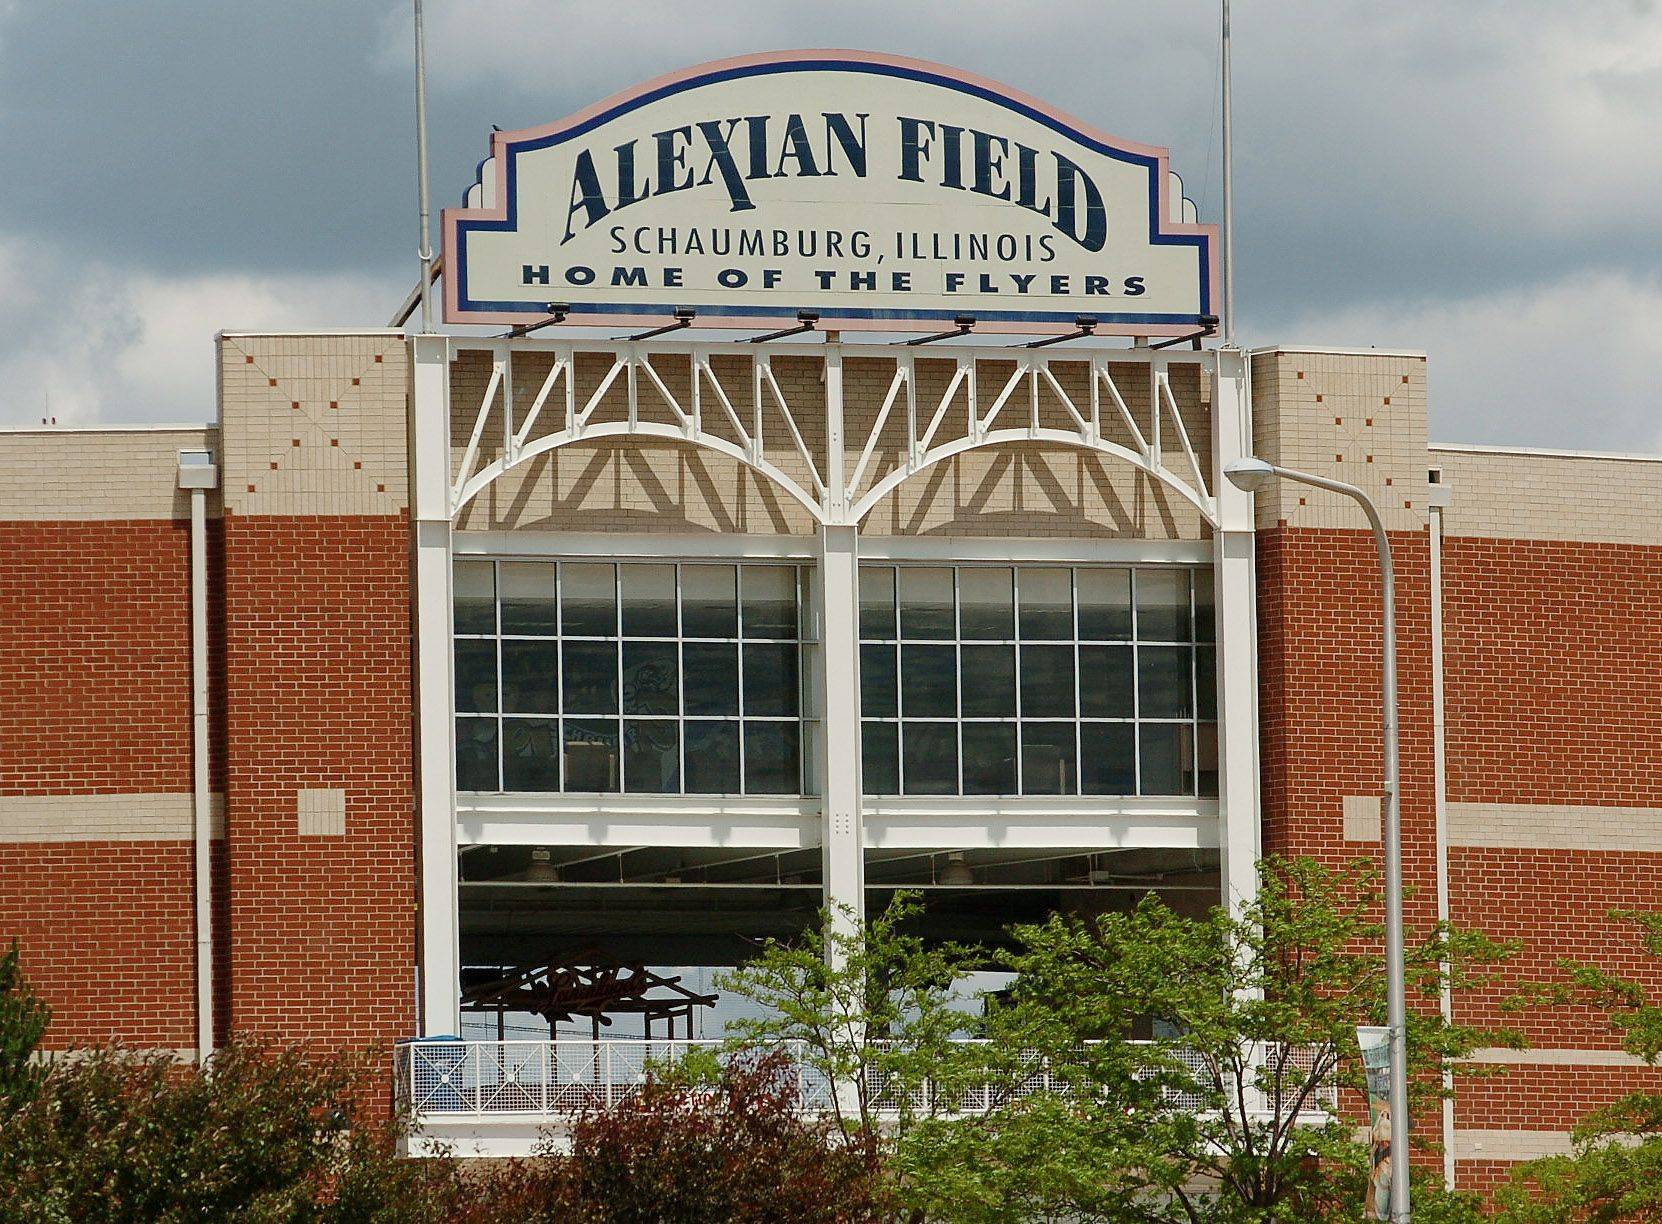 New ownership and new team president/general manager are in place for the 2012 season at Alexian Field. A new name and logo for the American Association baseball team will be revealed soon, says owner Pat Salvi.